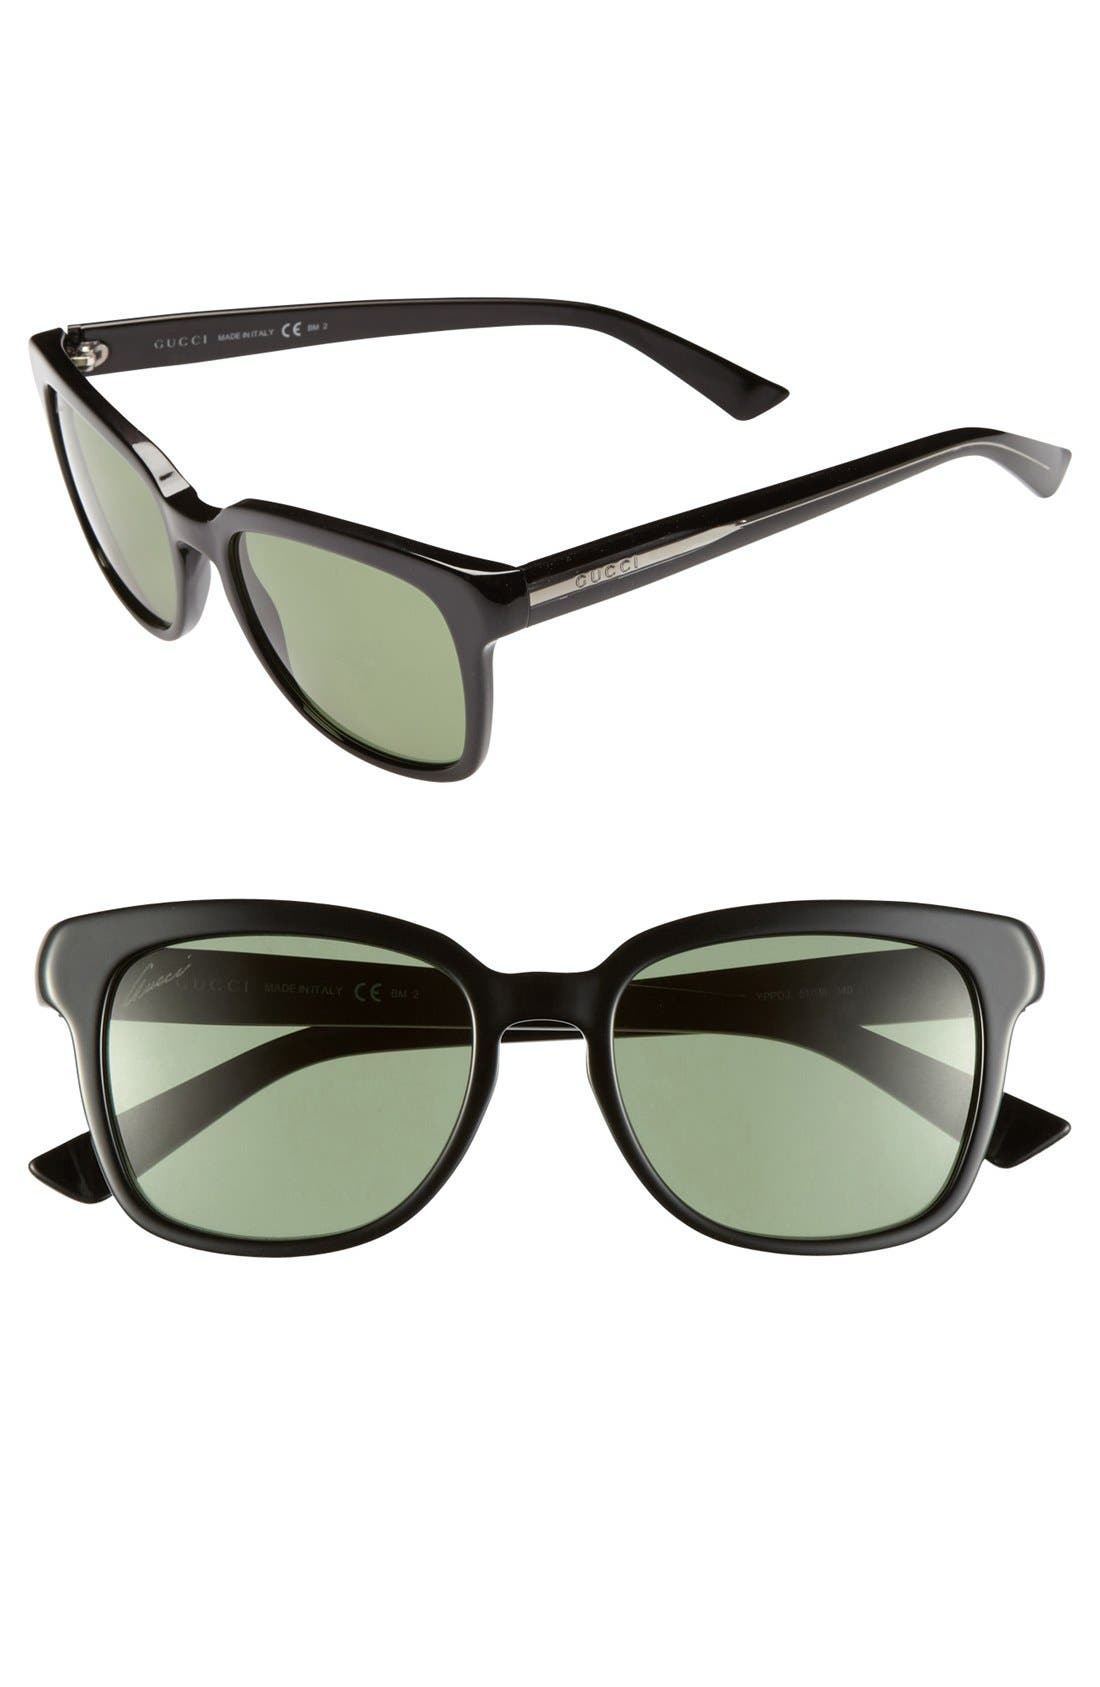 Alternate Image 1 Selected - Gucci 51mm Sunglasses